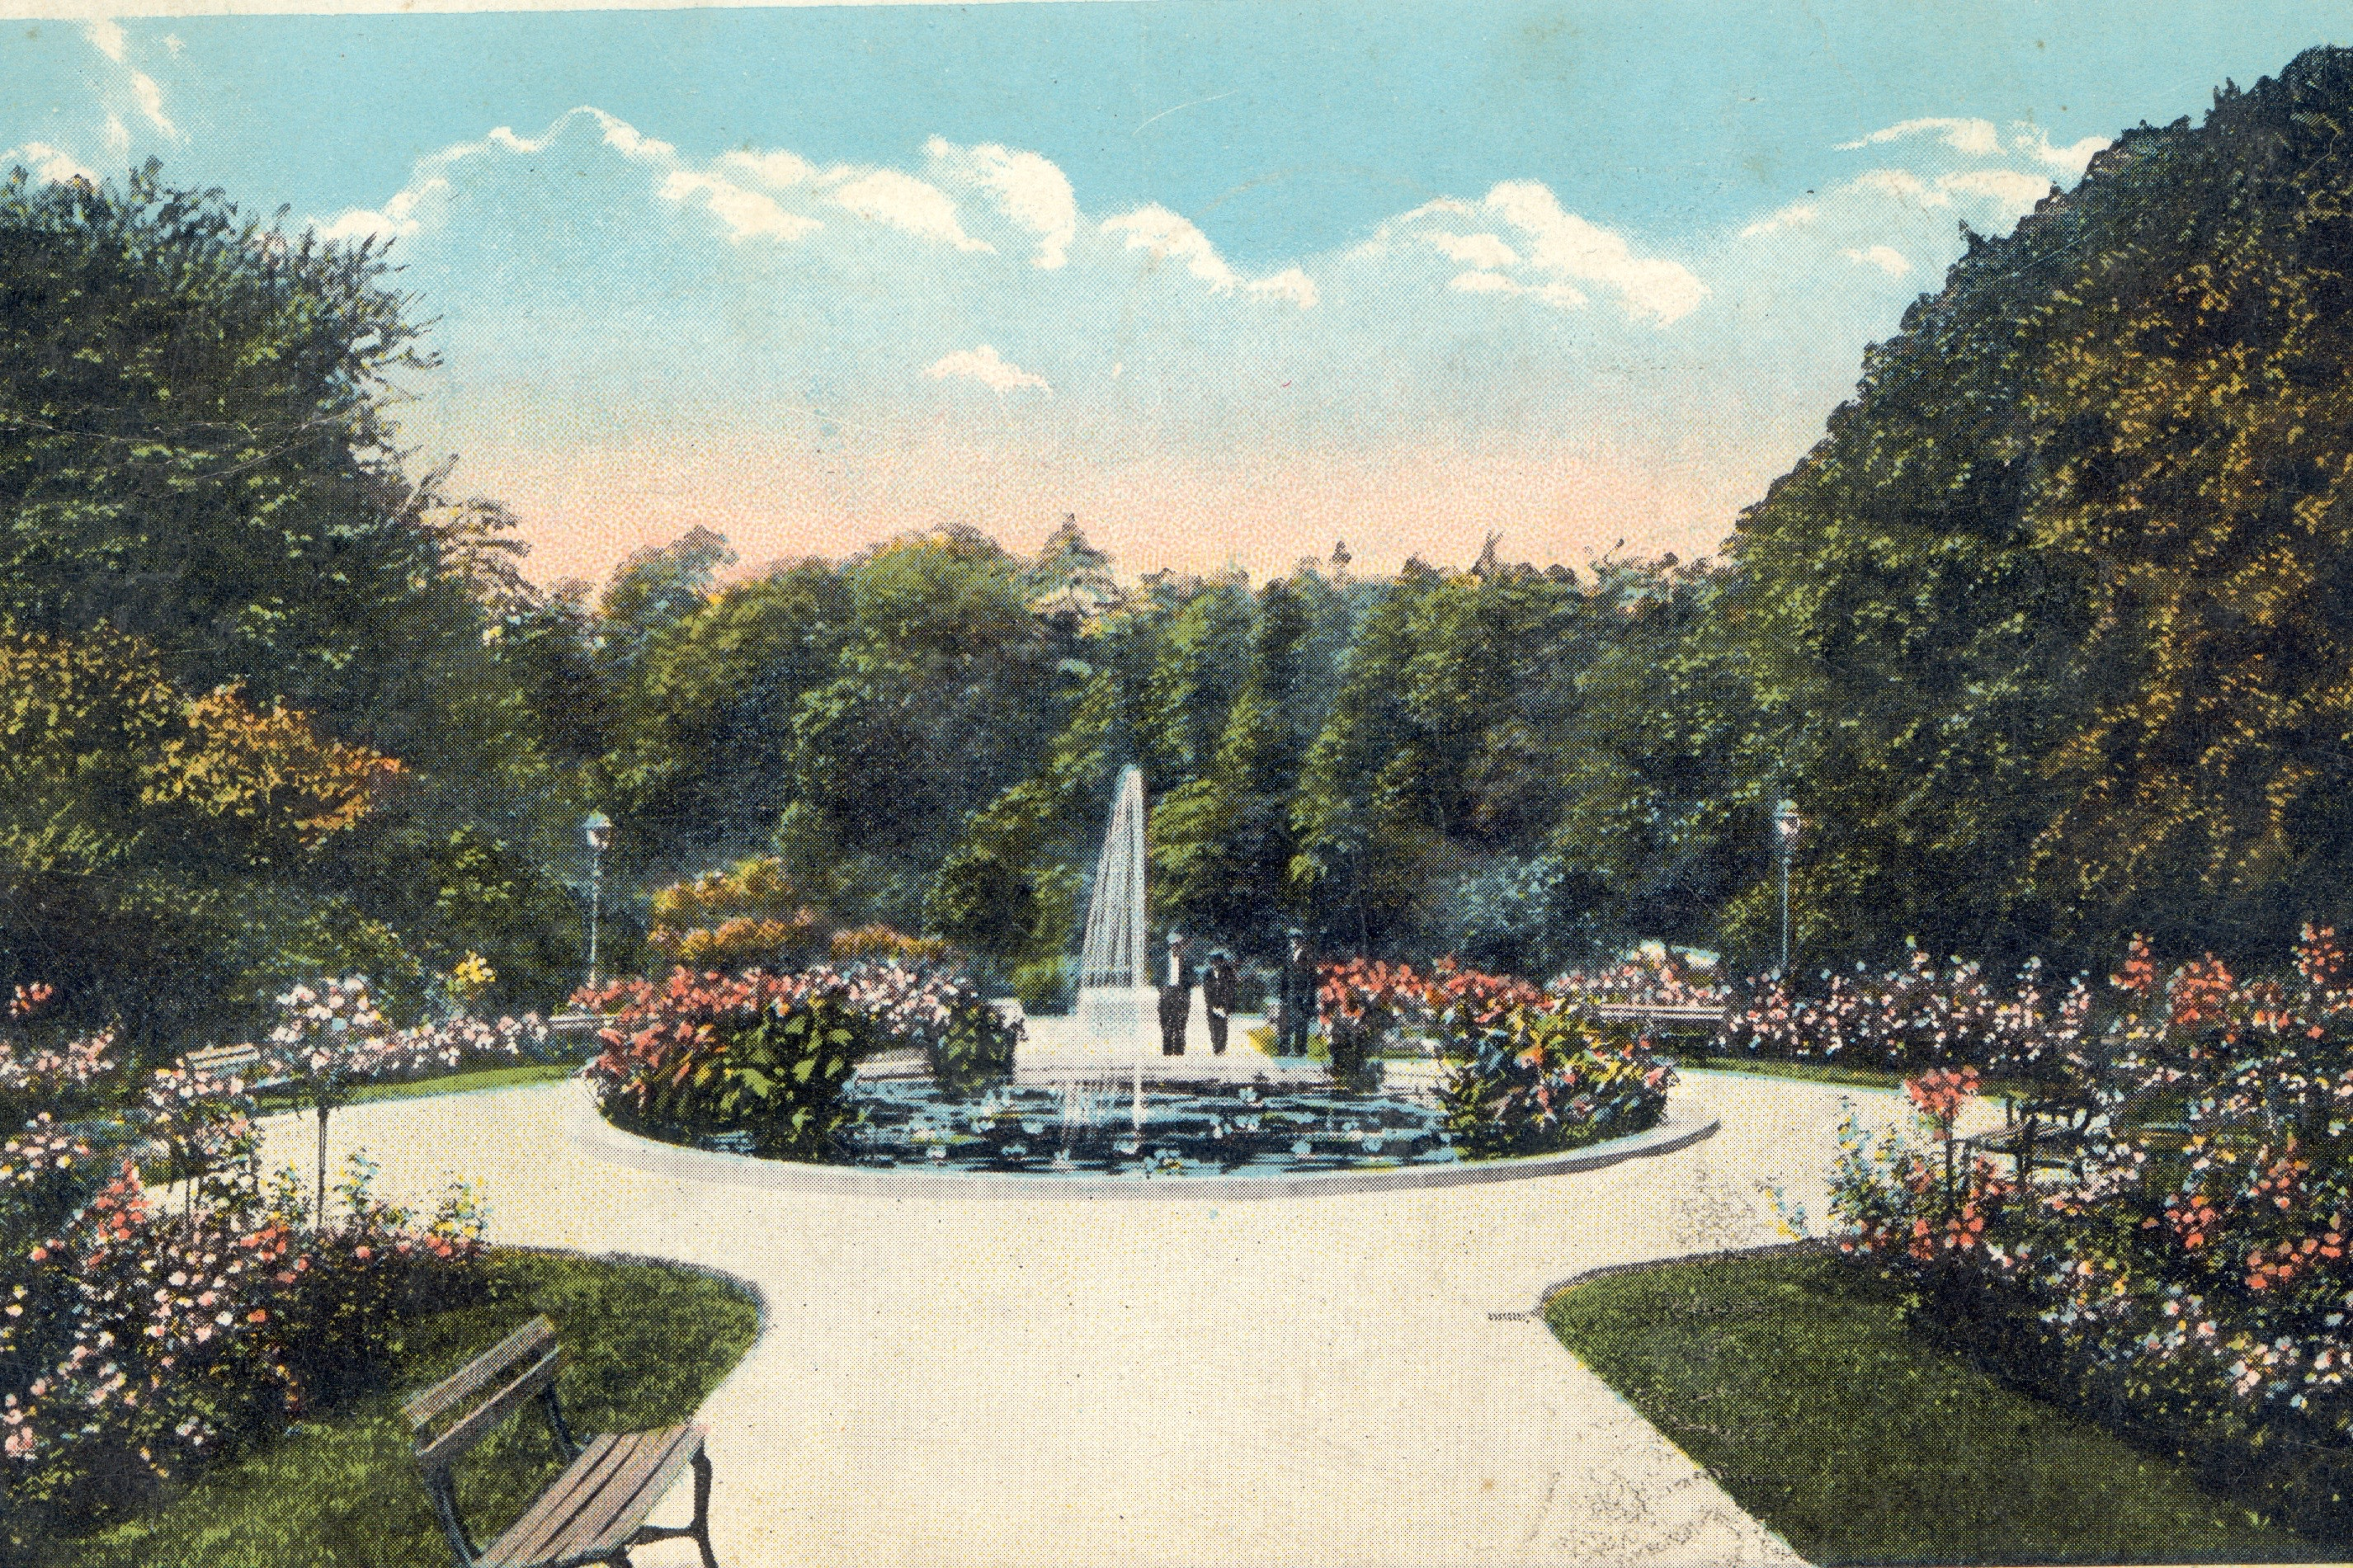 Prospect Park 39 S Rose Garden To Get Art Installation And